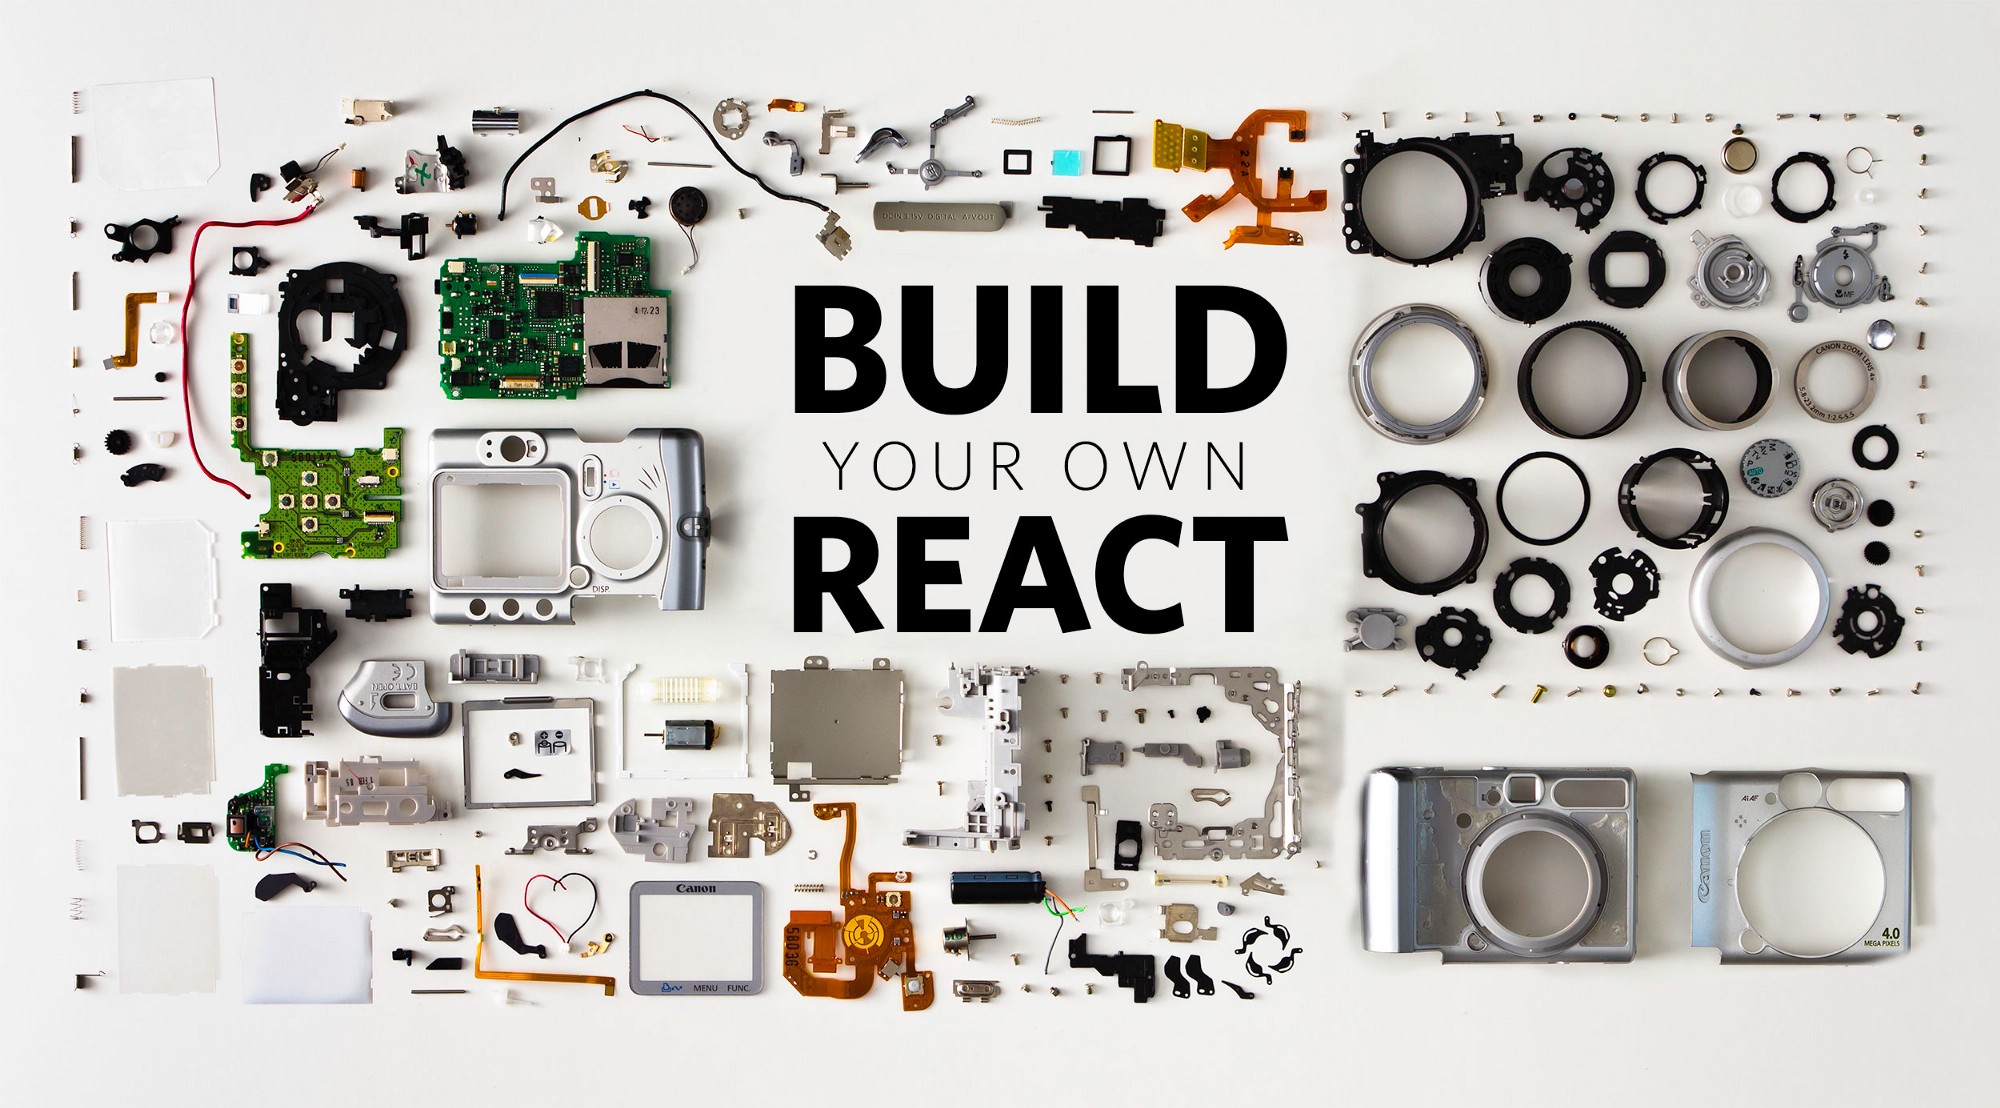 didact a diy guide to build your own react hexacta engineering